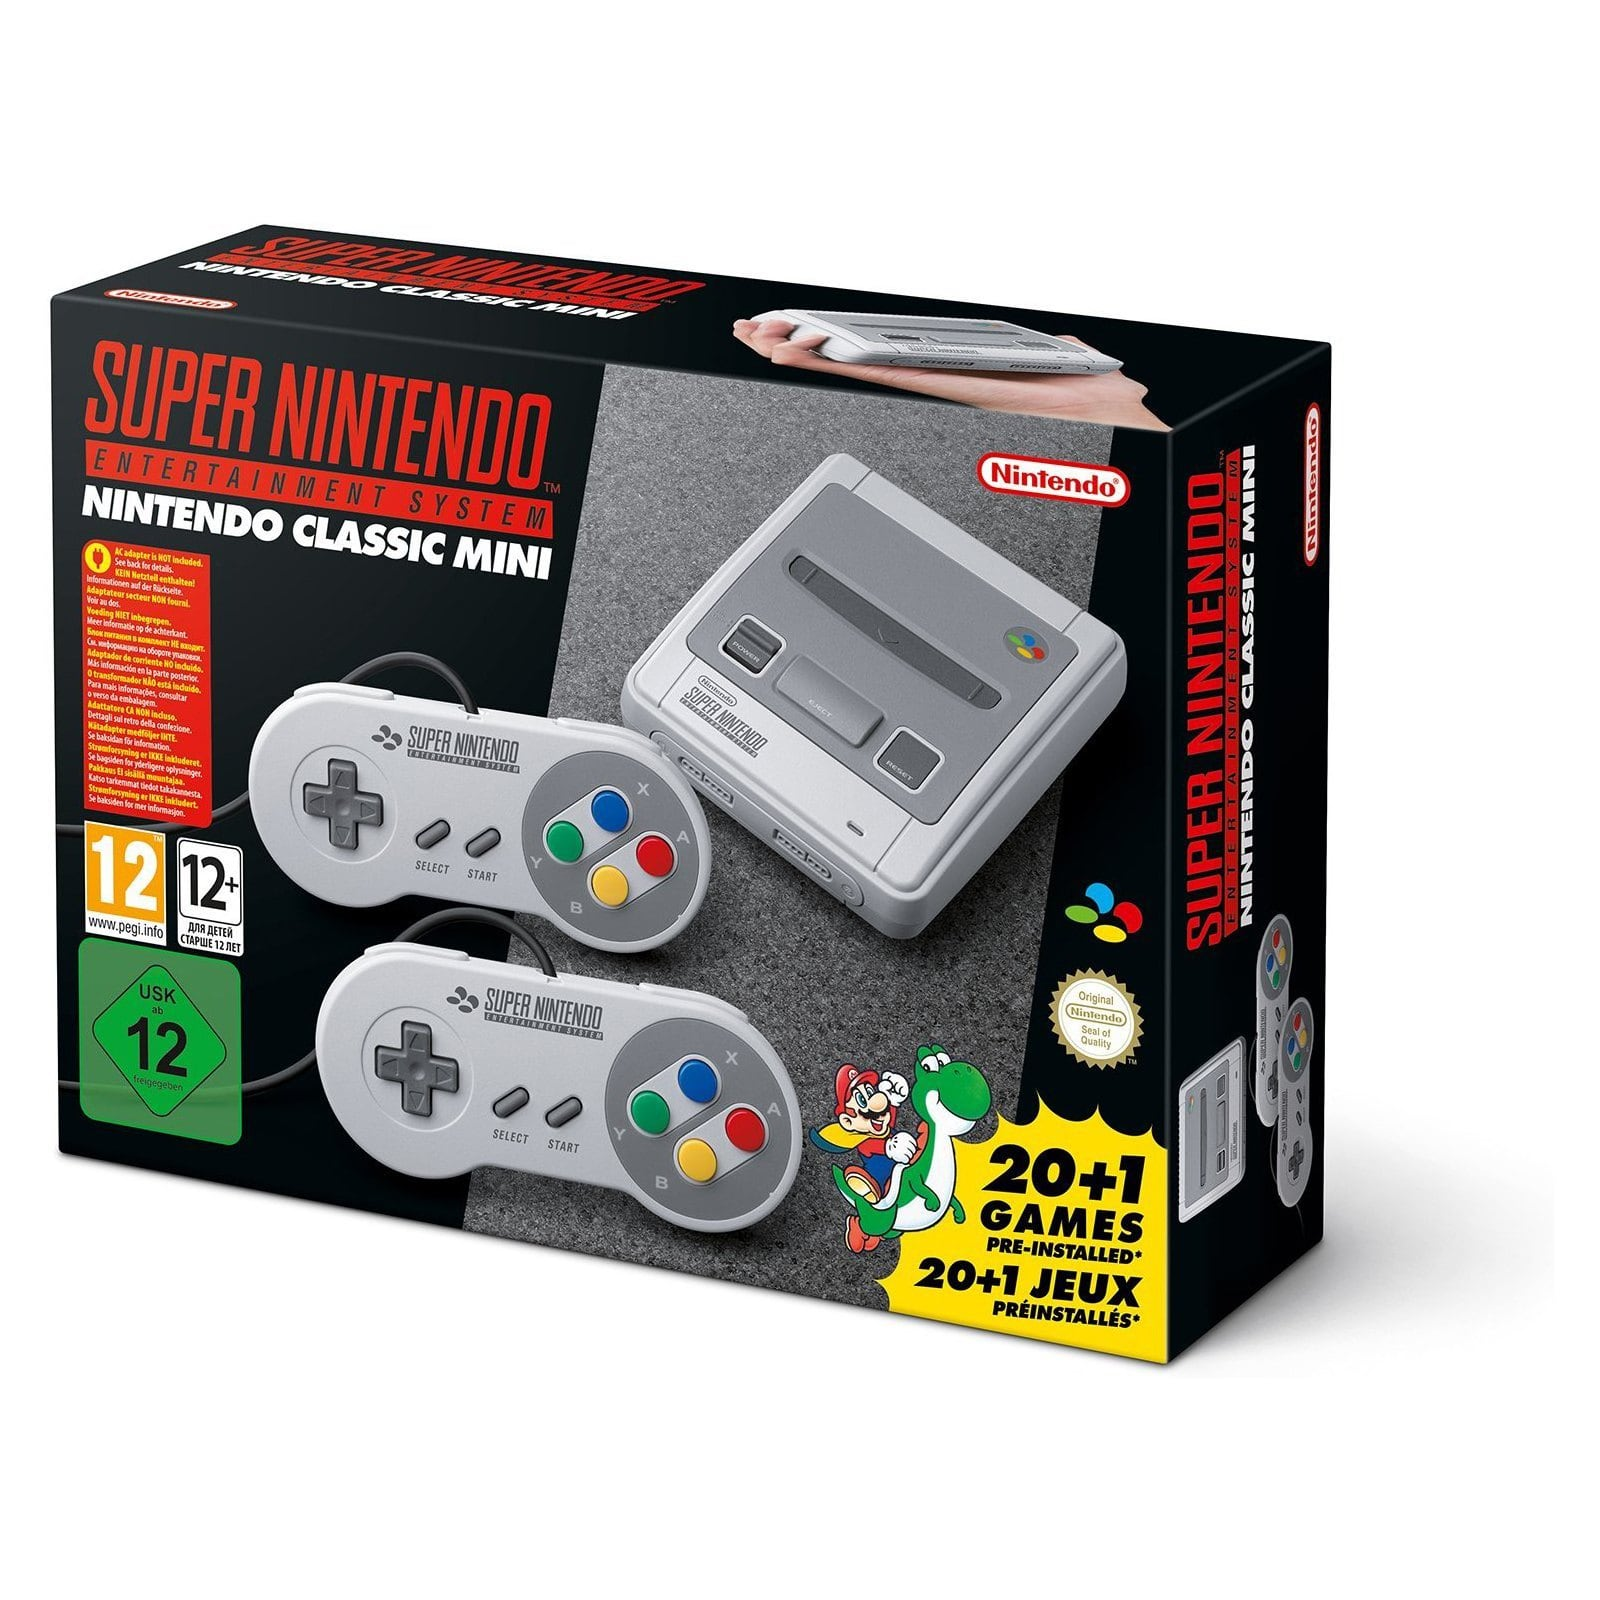 SNES Nintendo Classic Mini: Super Nintendo Entertainment System (region free) for $80.70 AC Shipped